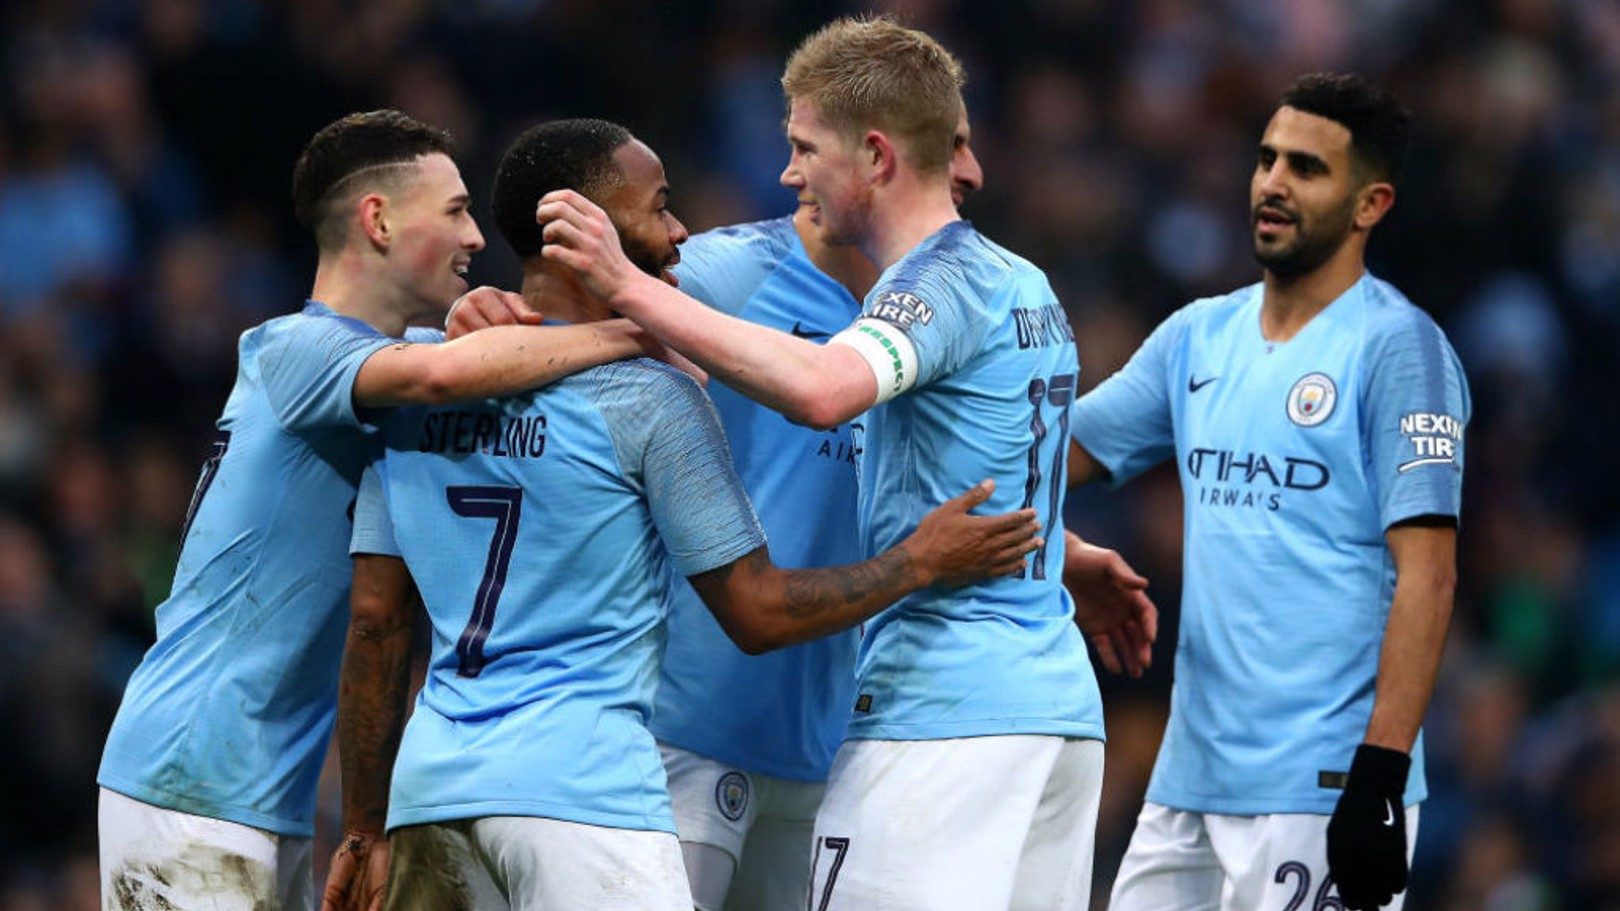 SEVEN UP: Manchester City were at our ruthless best in our FA Cup win over Rotherham